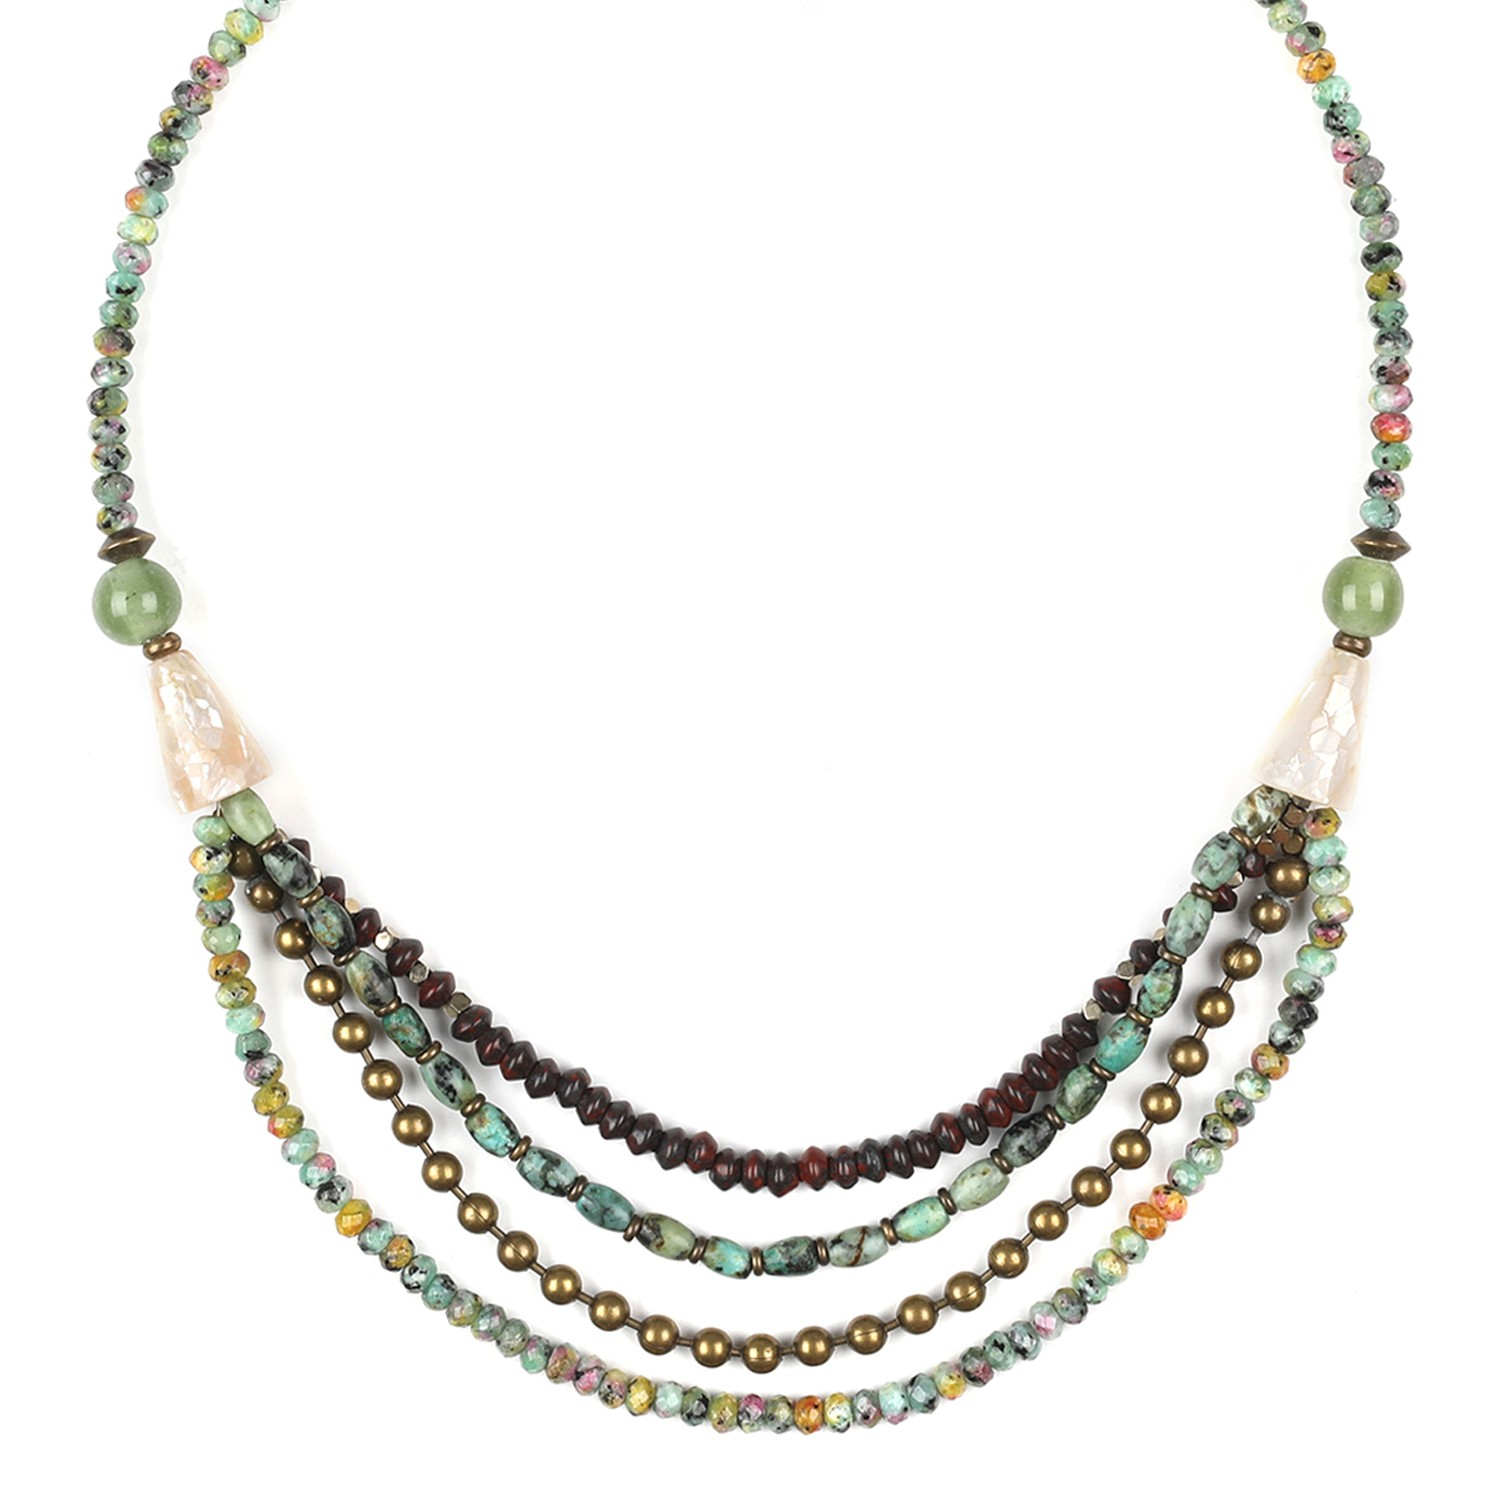 TARAWERA 4 thin row necklace